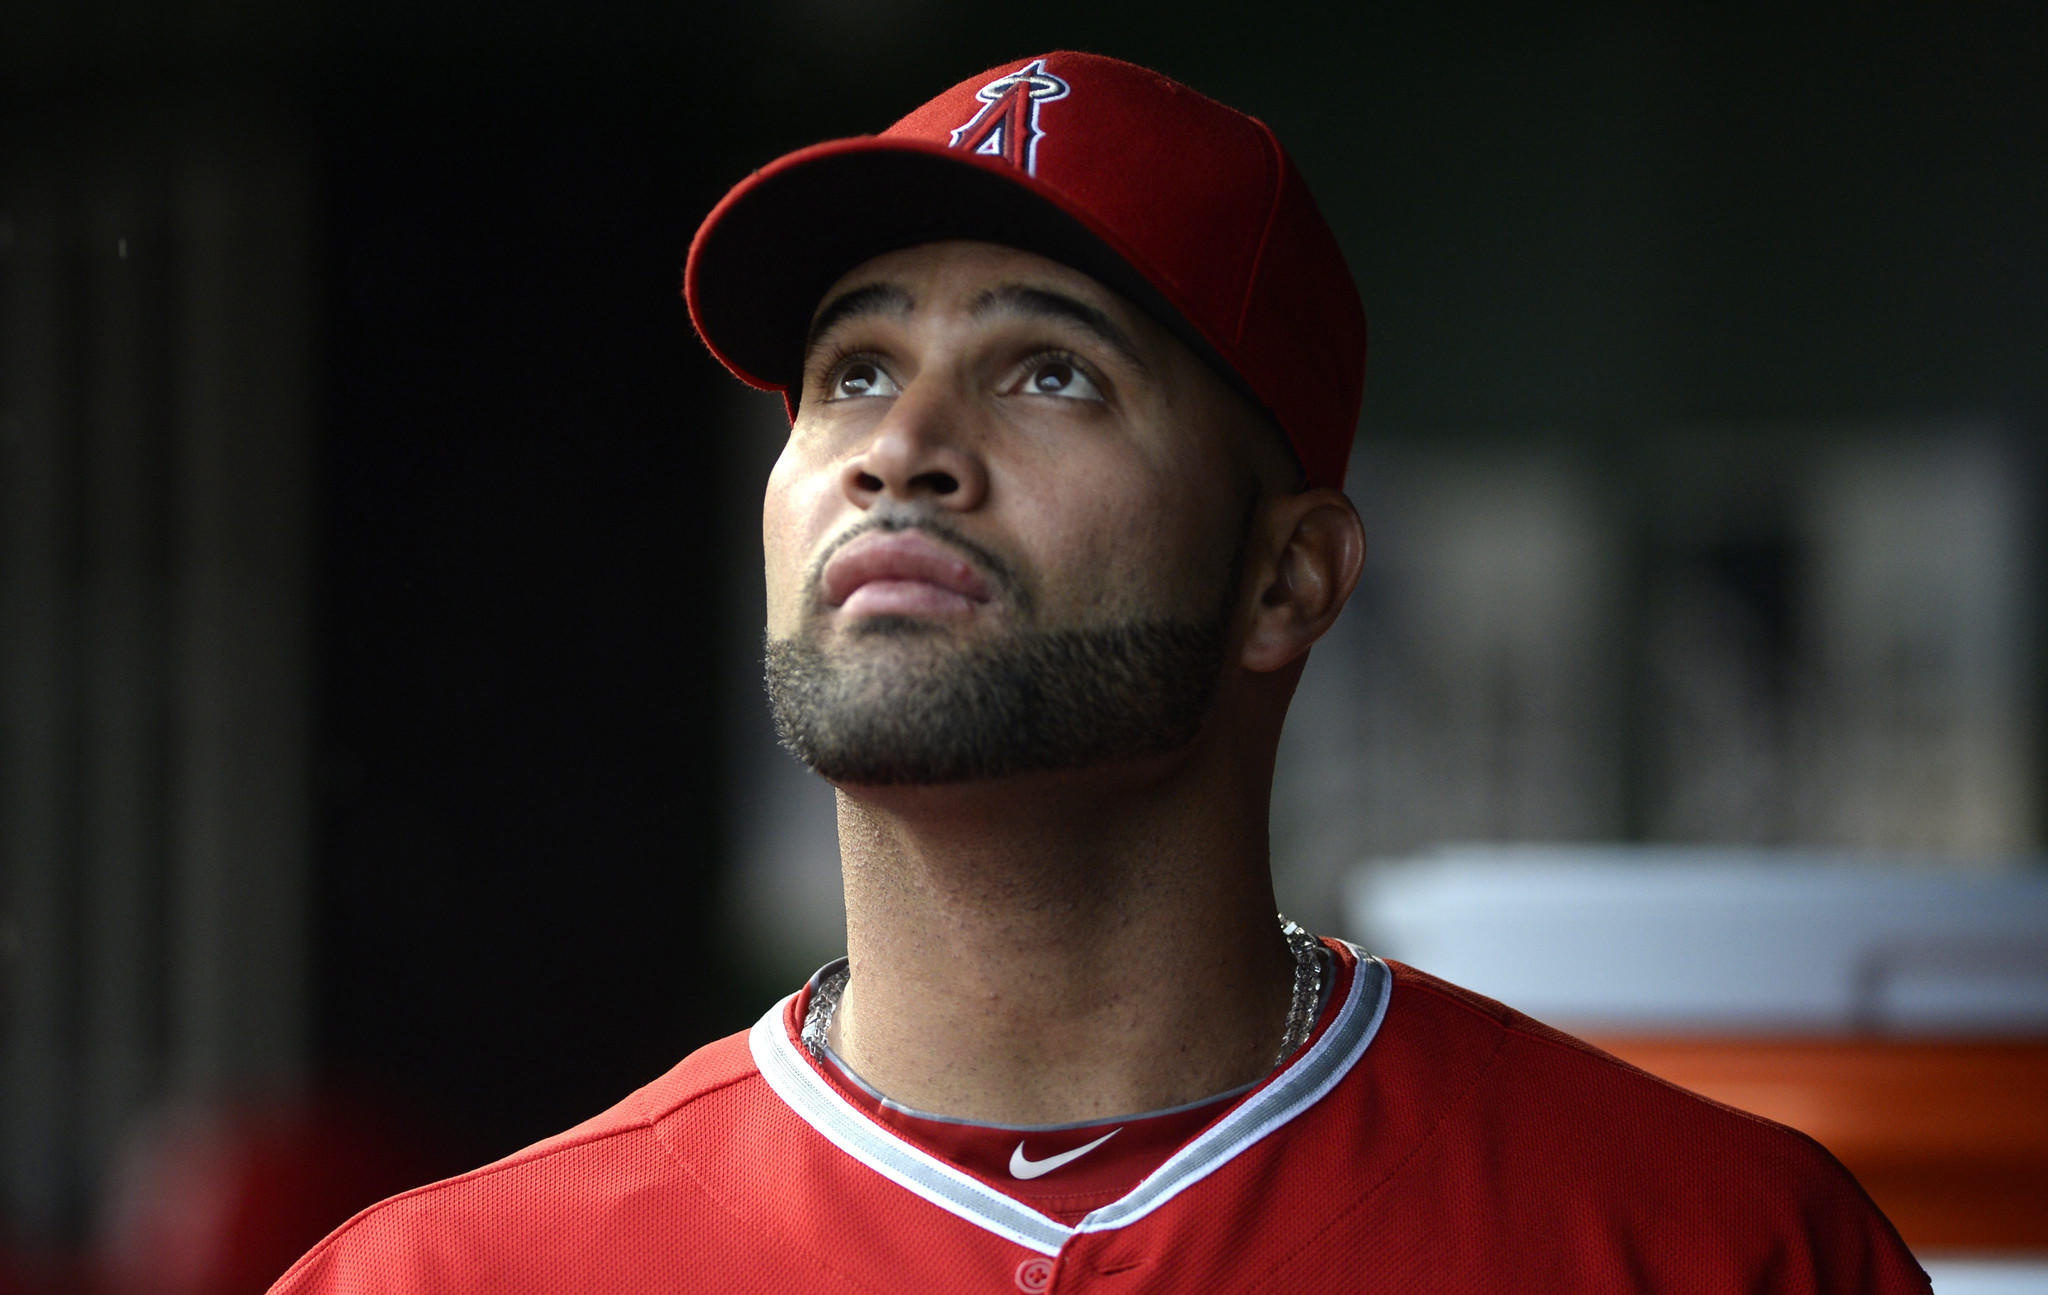 Angels slugger Albert Pujols didn't get much sleep after hitting his 500th career home run Tuesday night.